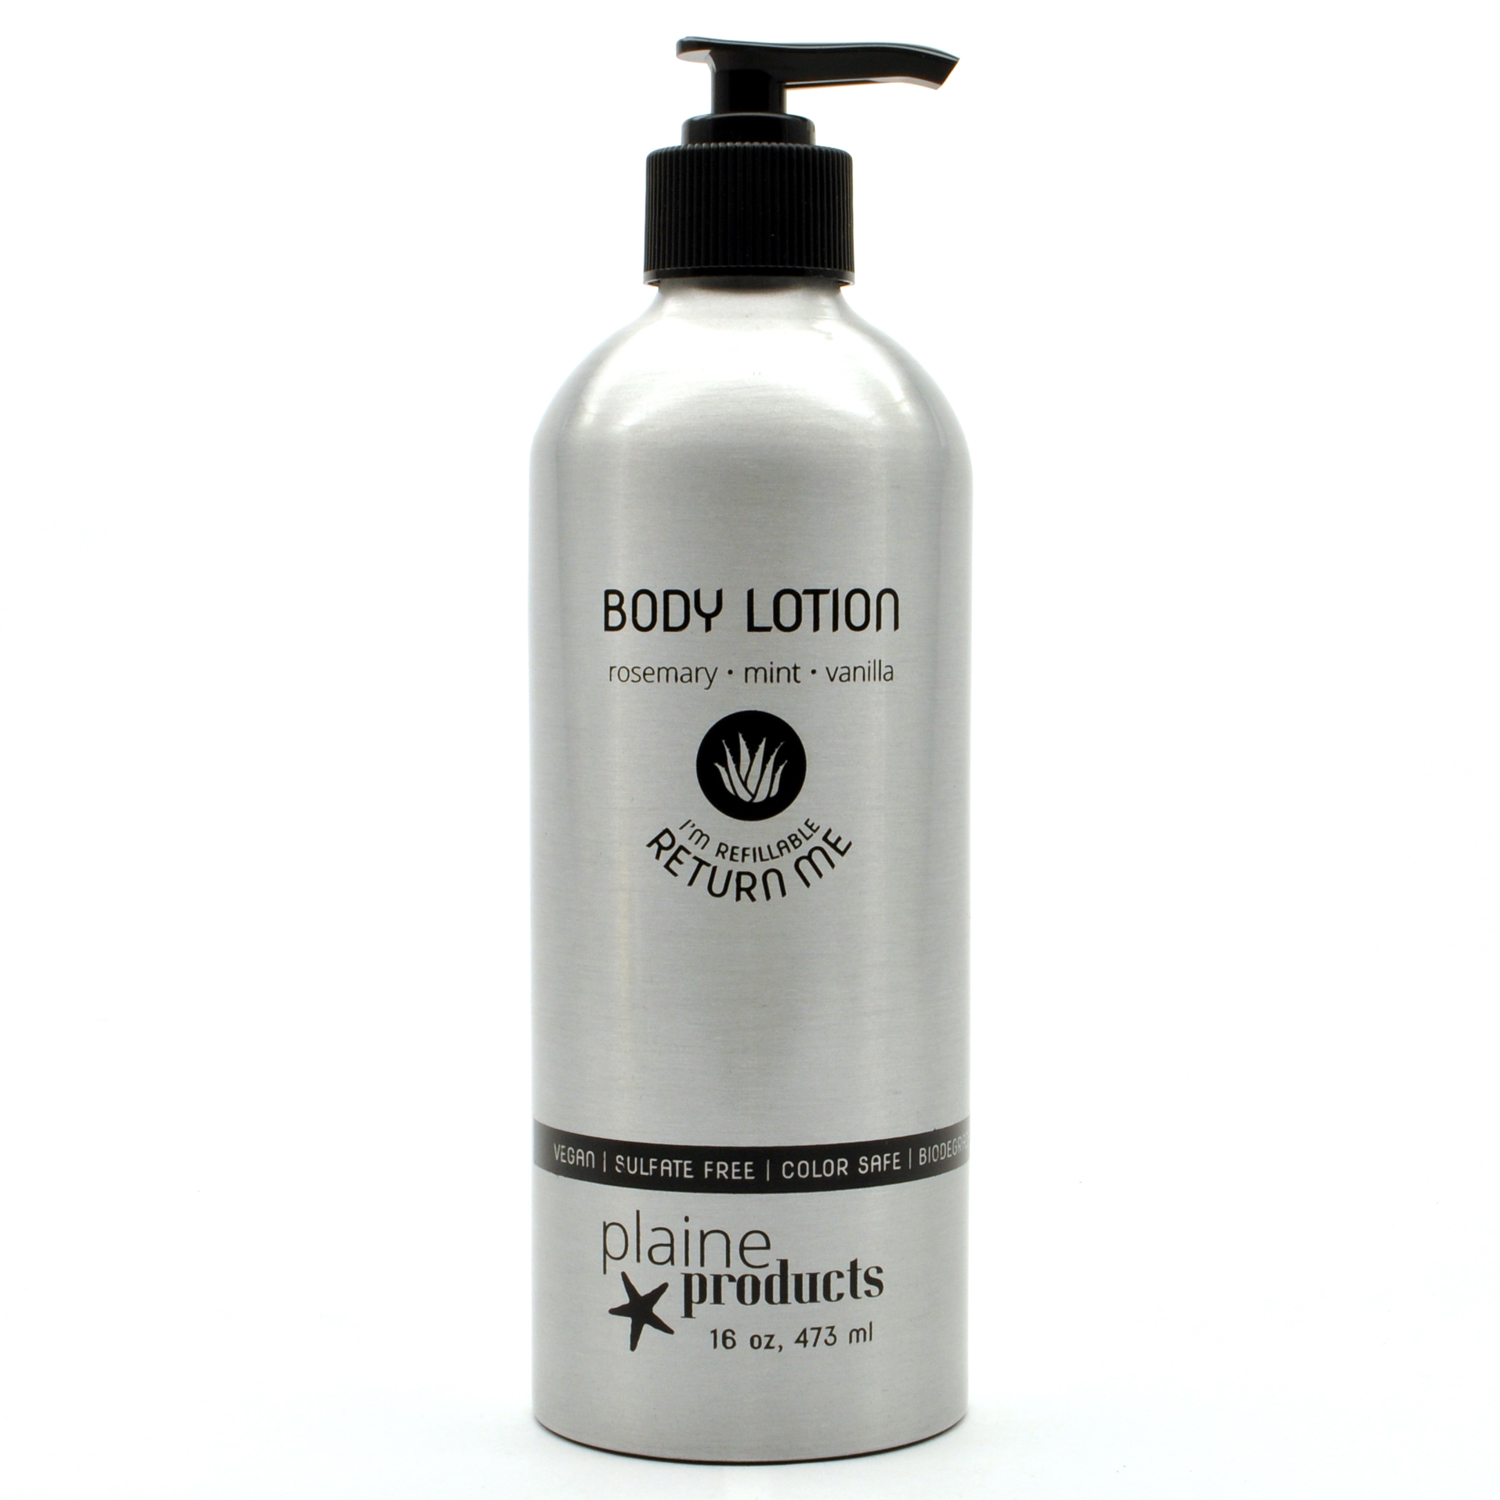 Refillable, Reusable, Rosemary Mint Vanilla Body Lotion